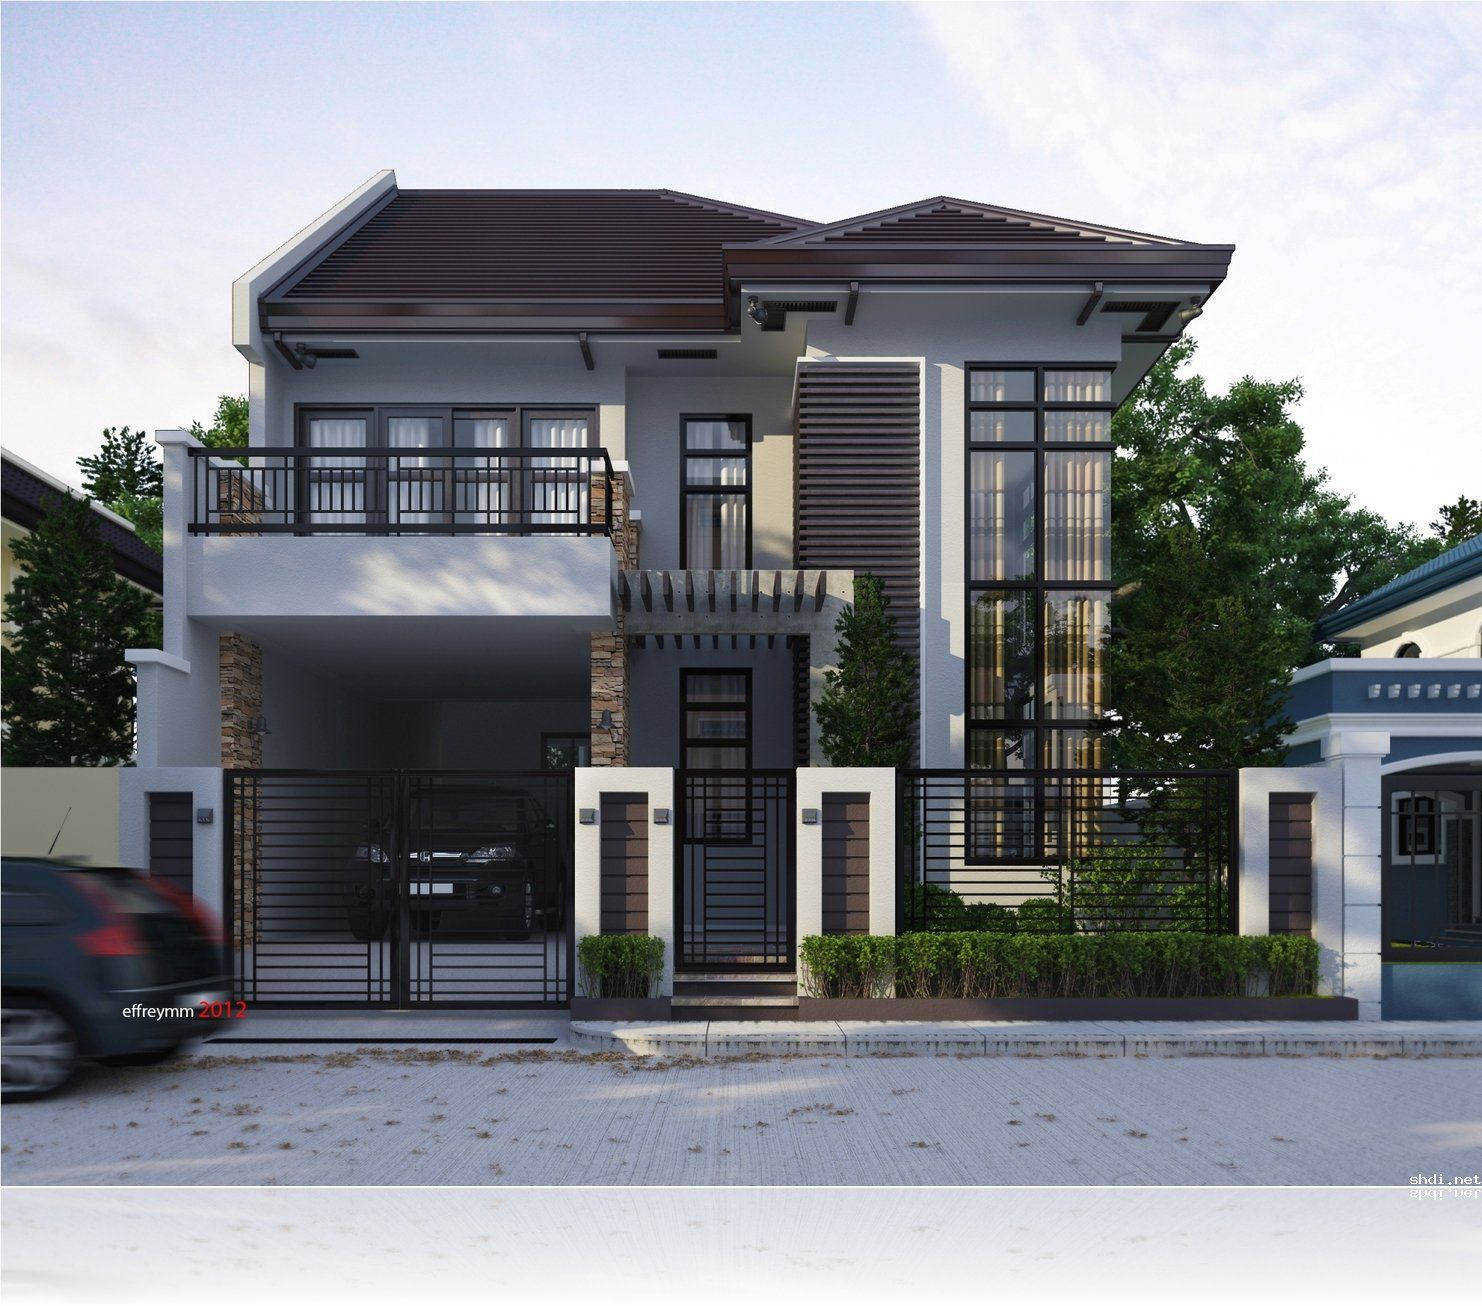 Simple house design plan with bedrooms houses terrace adorable decozt inspiring home interior idea for modern decoration plans two also best images in residential architecture rh pinterest